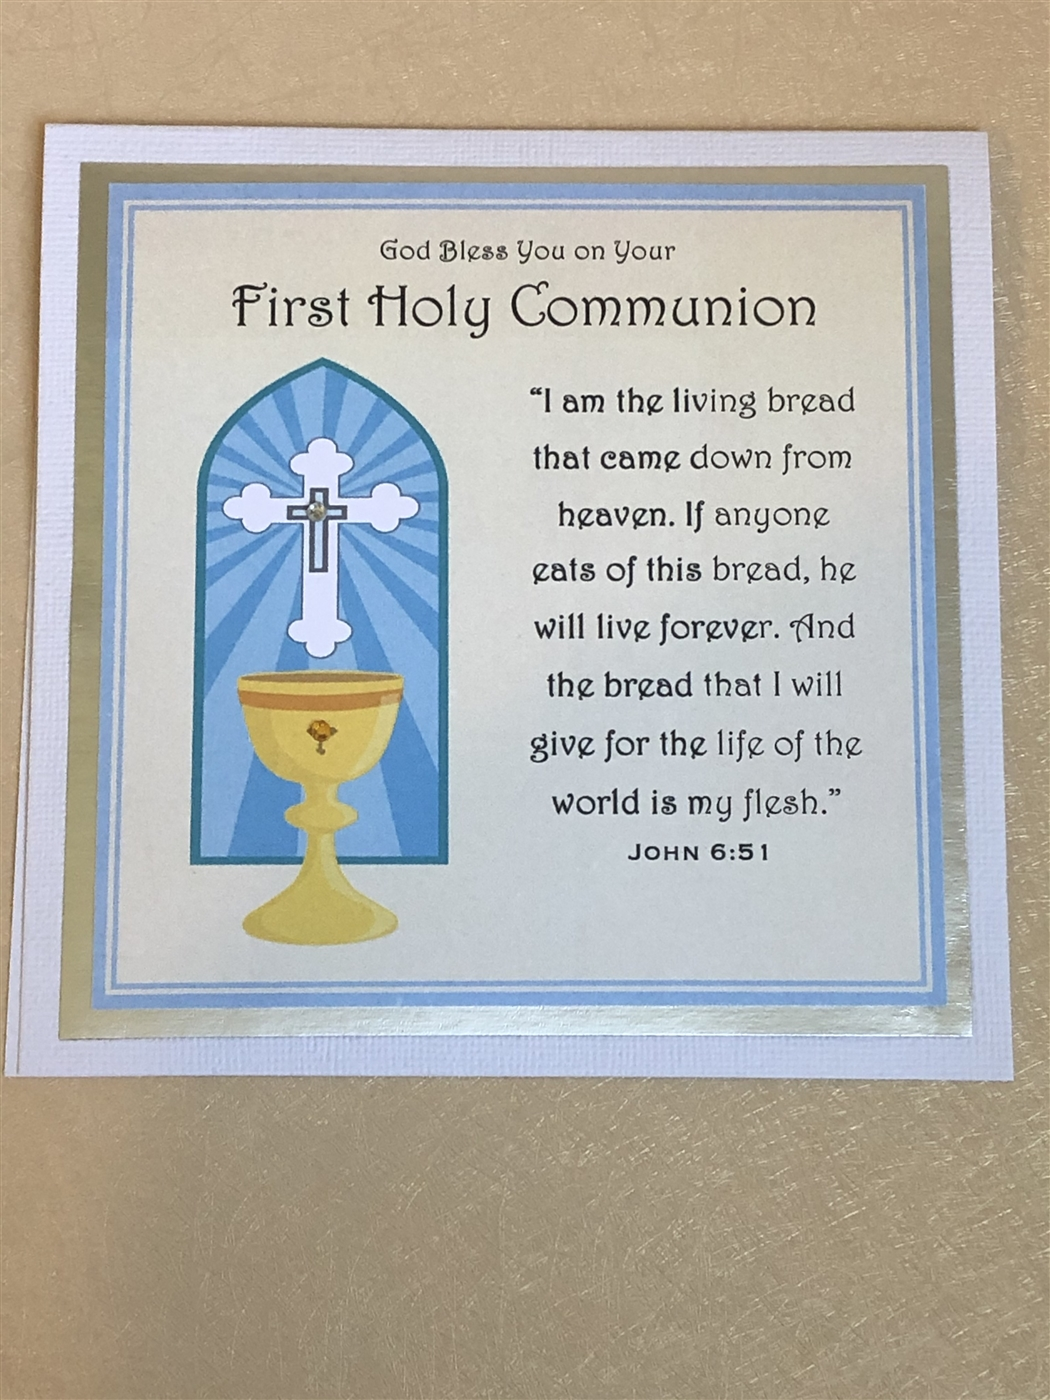 On Your First Communion Handmade Religious Card Religious Greeting Card Religious Card First Communion Card